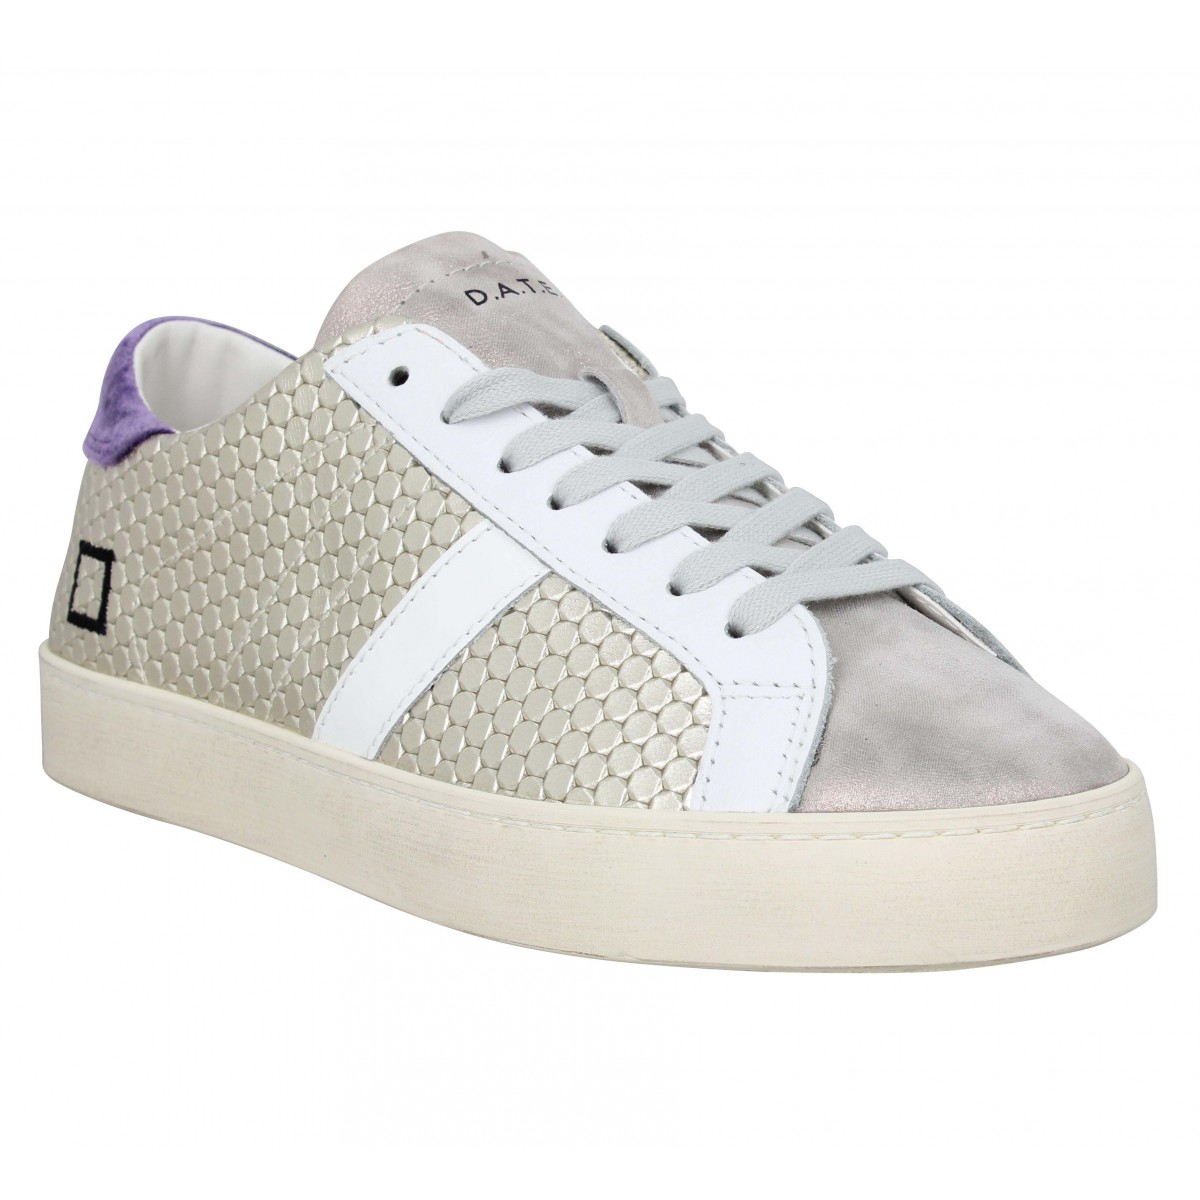 Baskets DATE SNEAKERS Hill Low pong Femme Platine